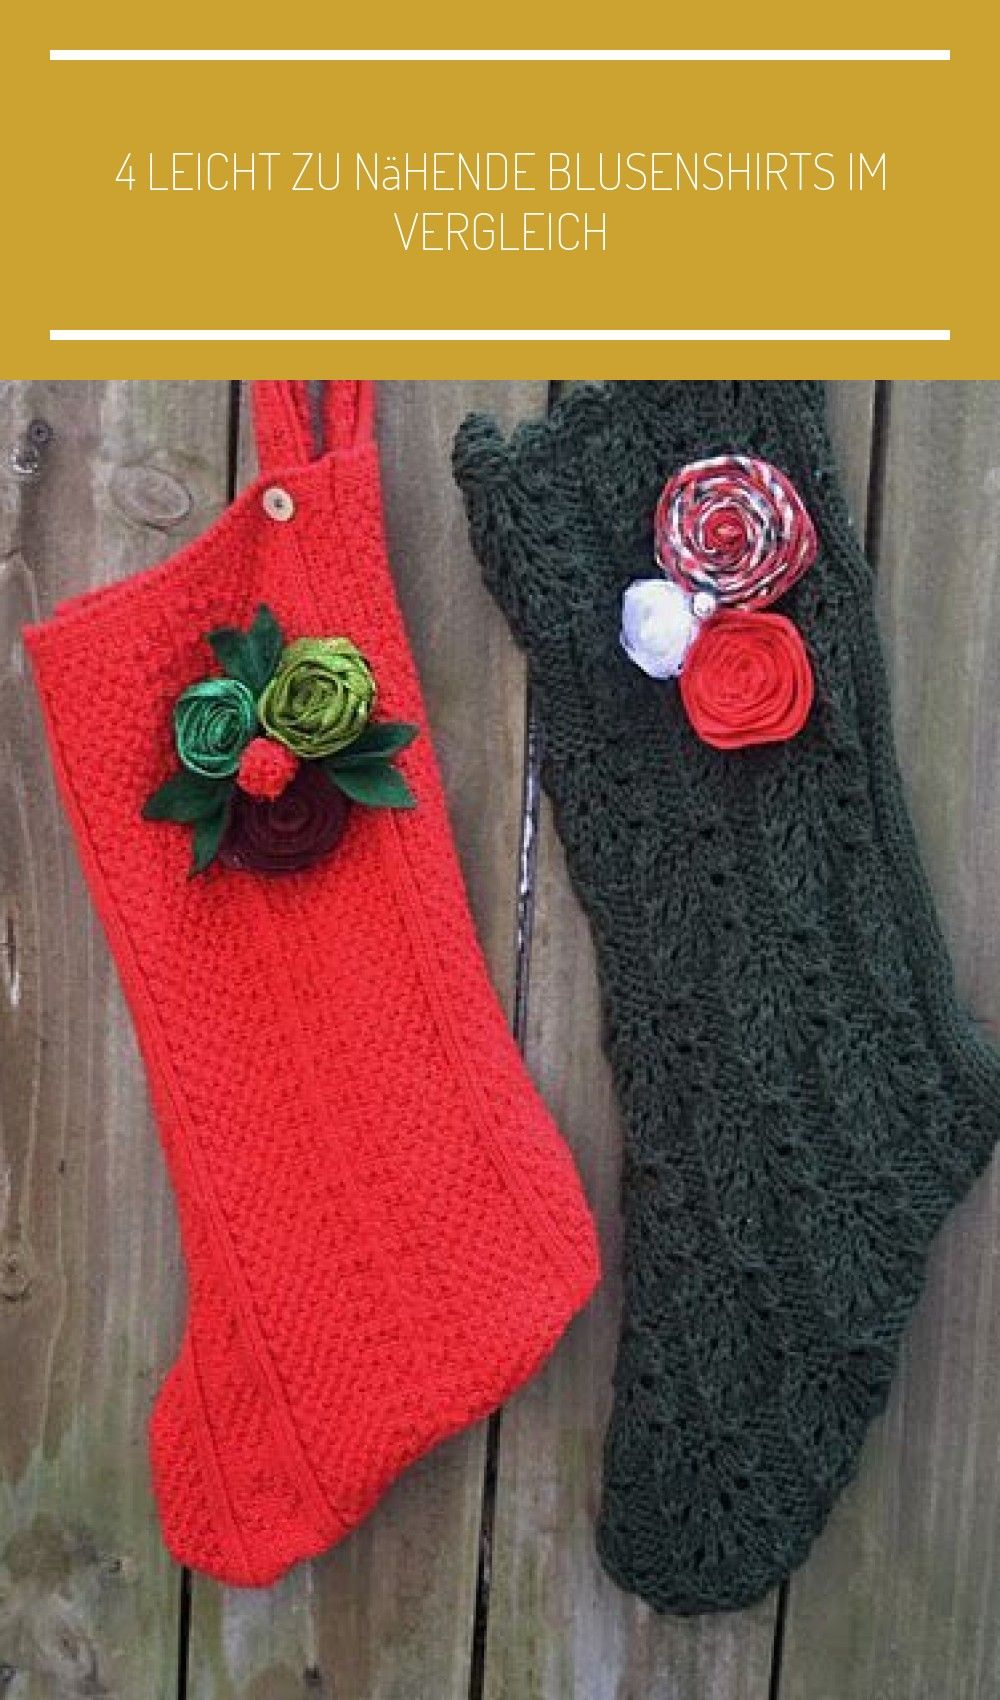 Upcycle Sweater Stockings  Im pullover ideas Upcycle Sweater Stockings  Im pullover ideas